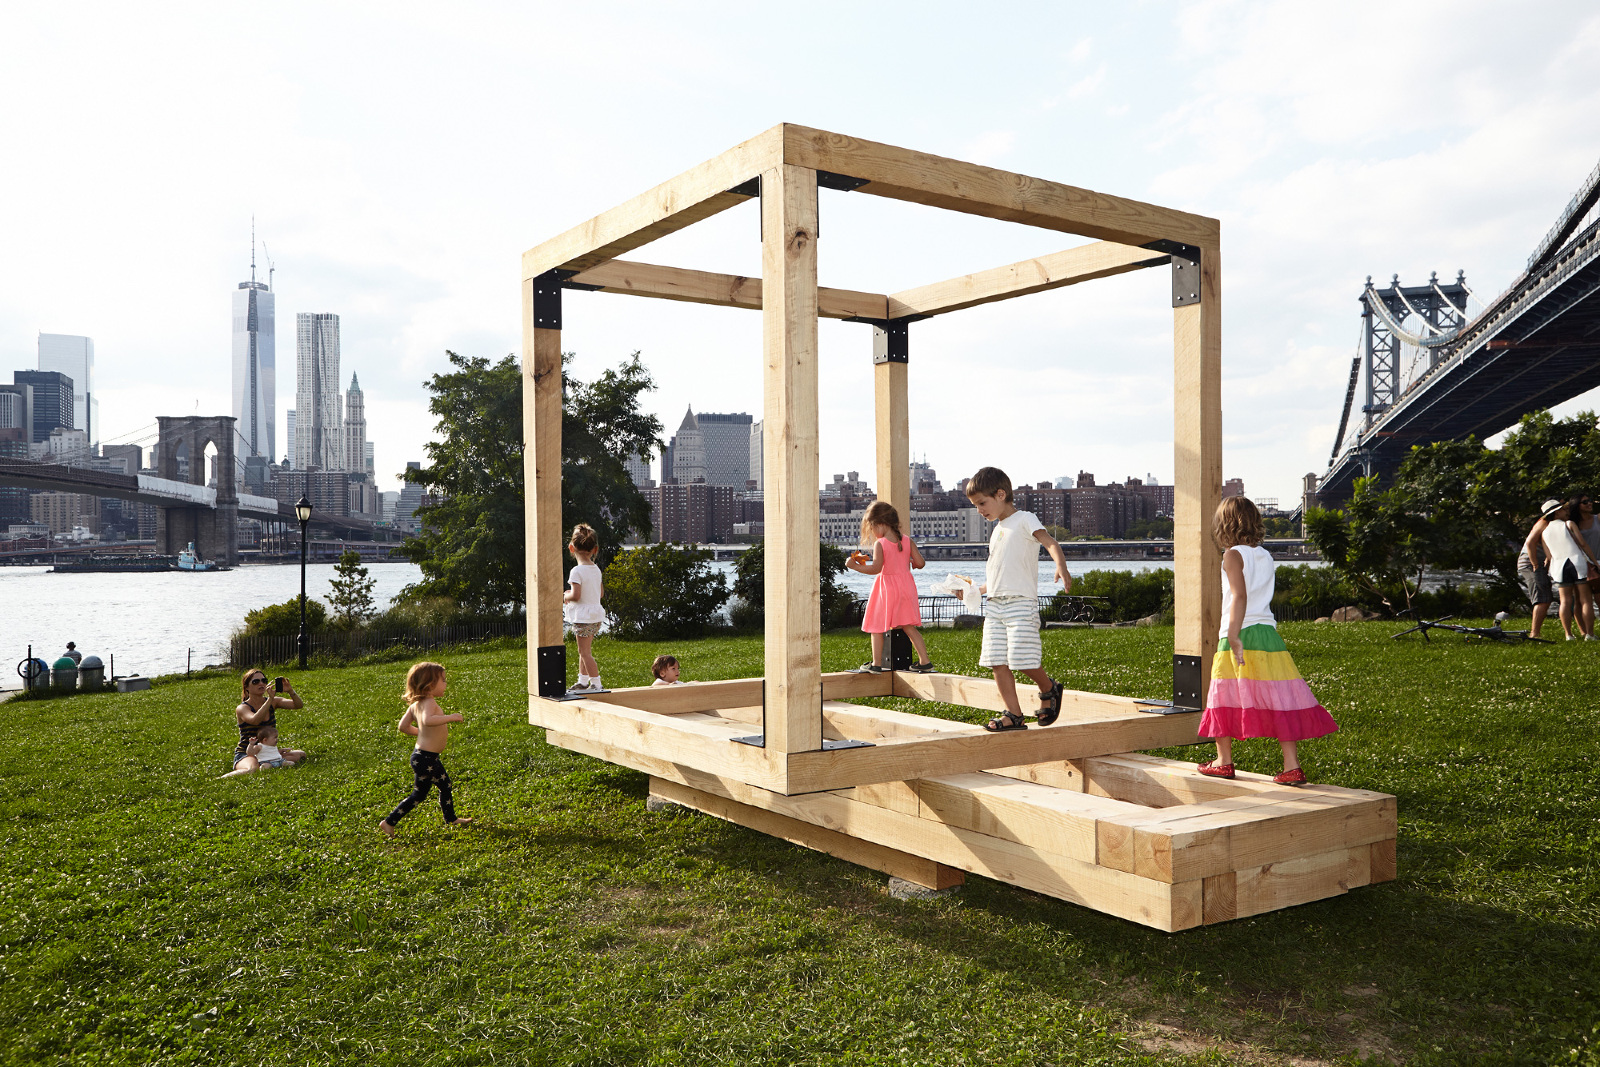 Untitled Benches Tables Cube For Children 2013